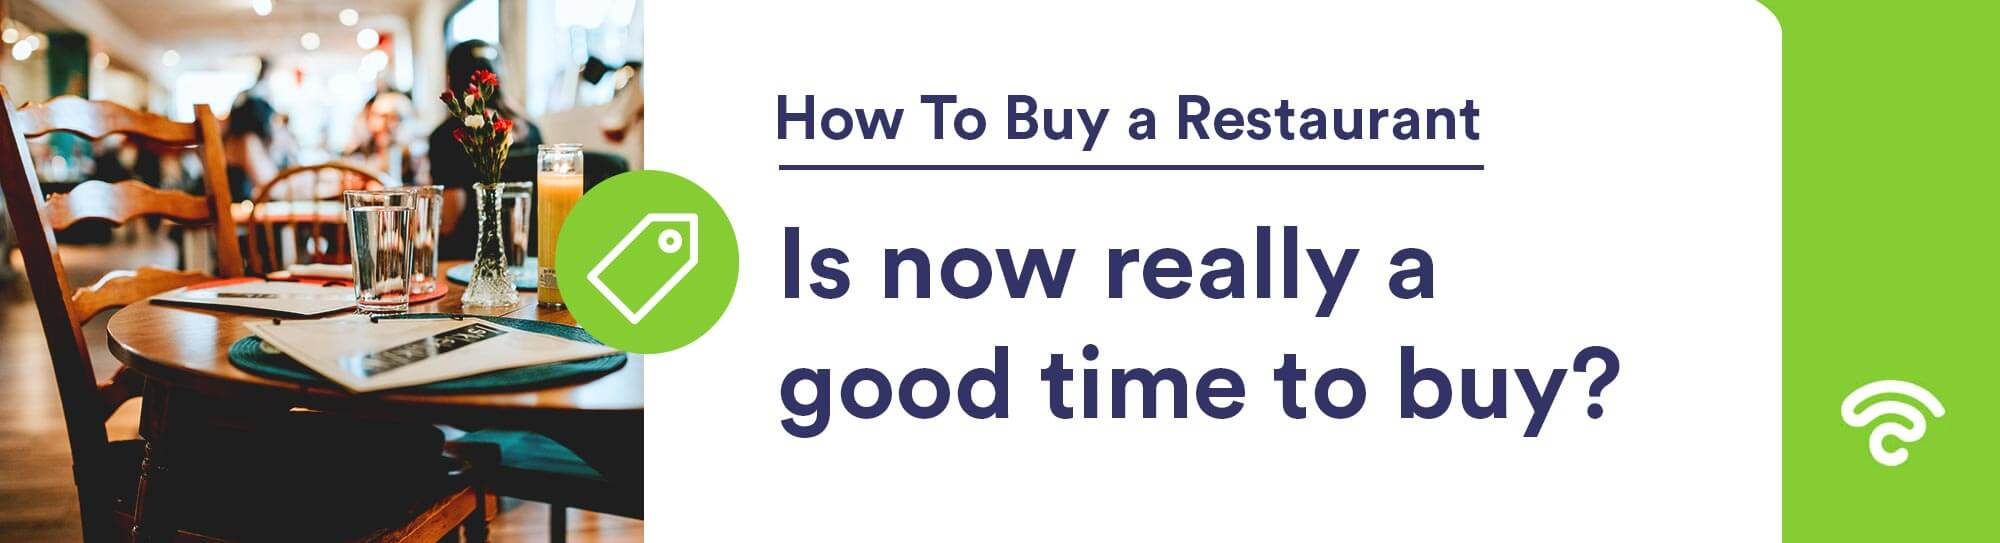 is now good time to buy restaurant